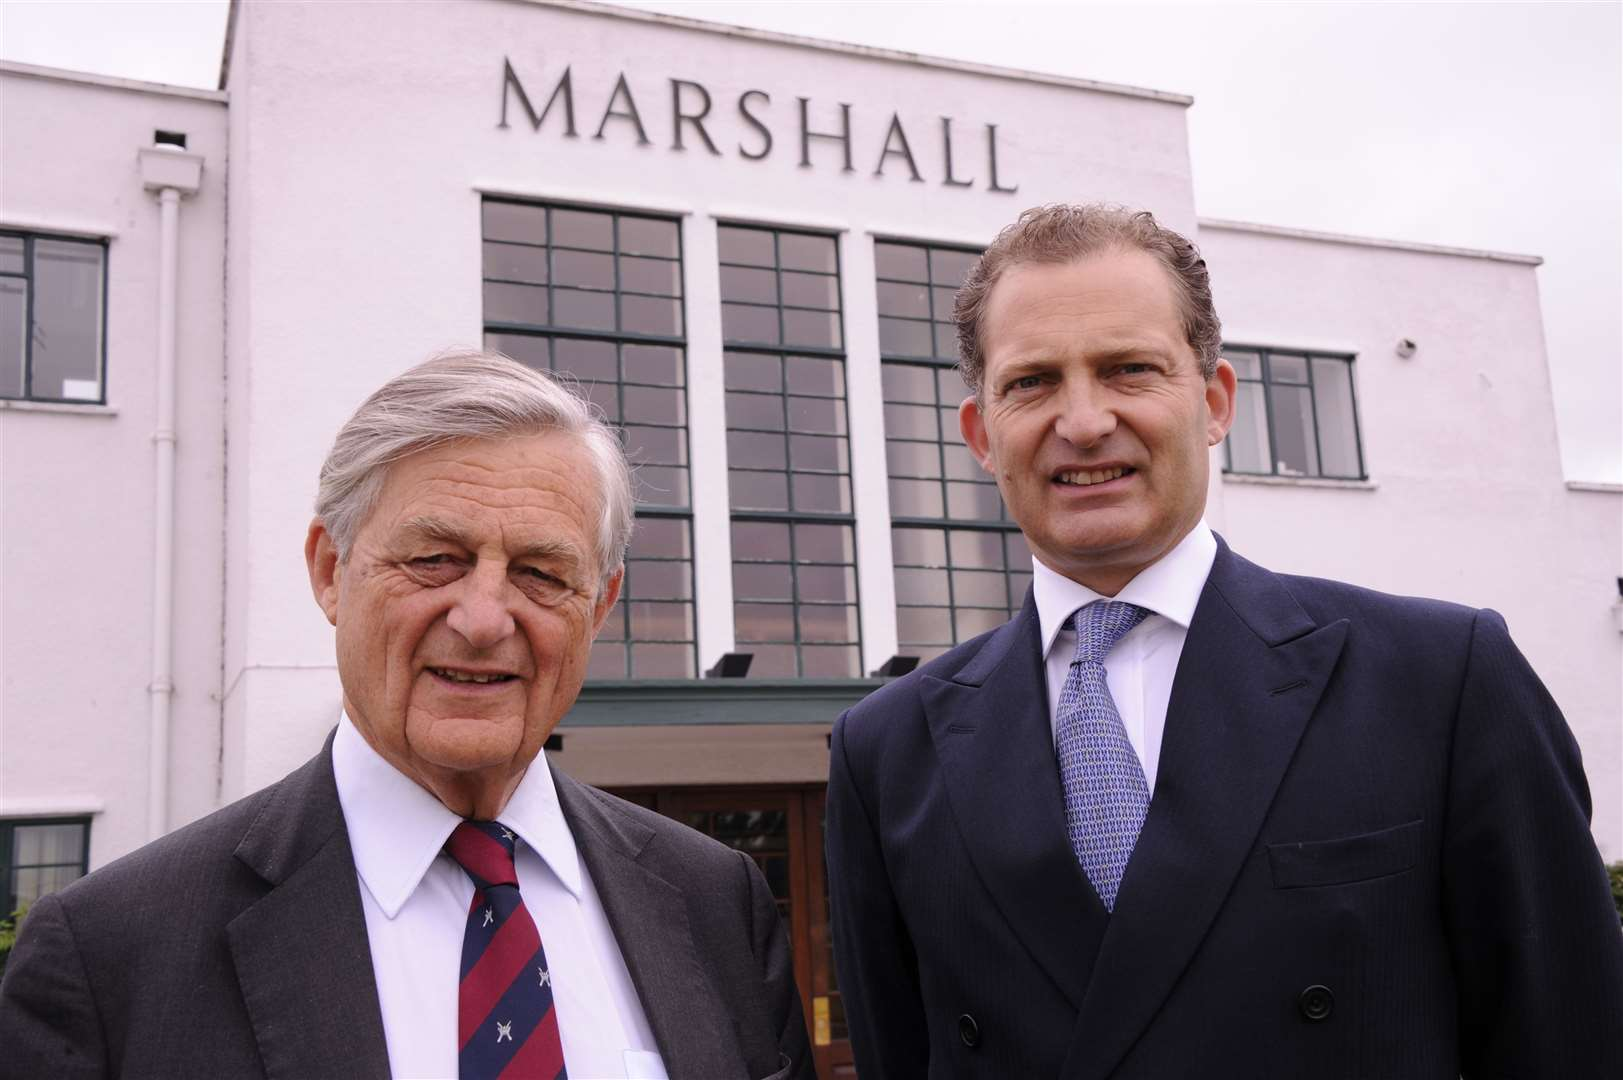 Sir Michael Marshall with his son Robert Marshall outside Marshall's headquarters in Cambridge (26882341)